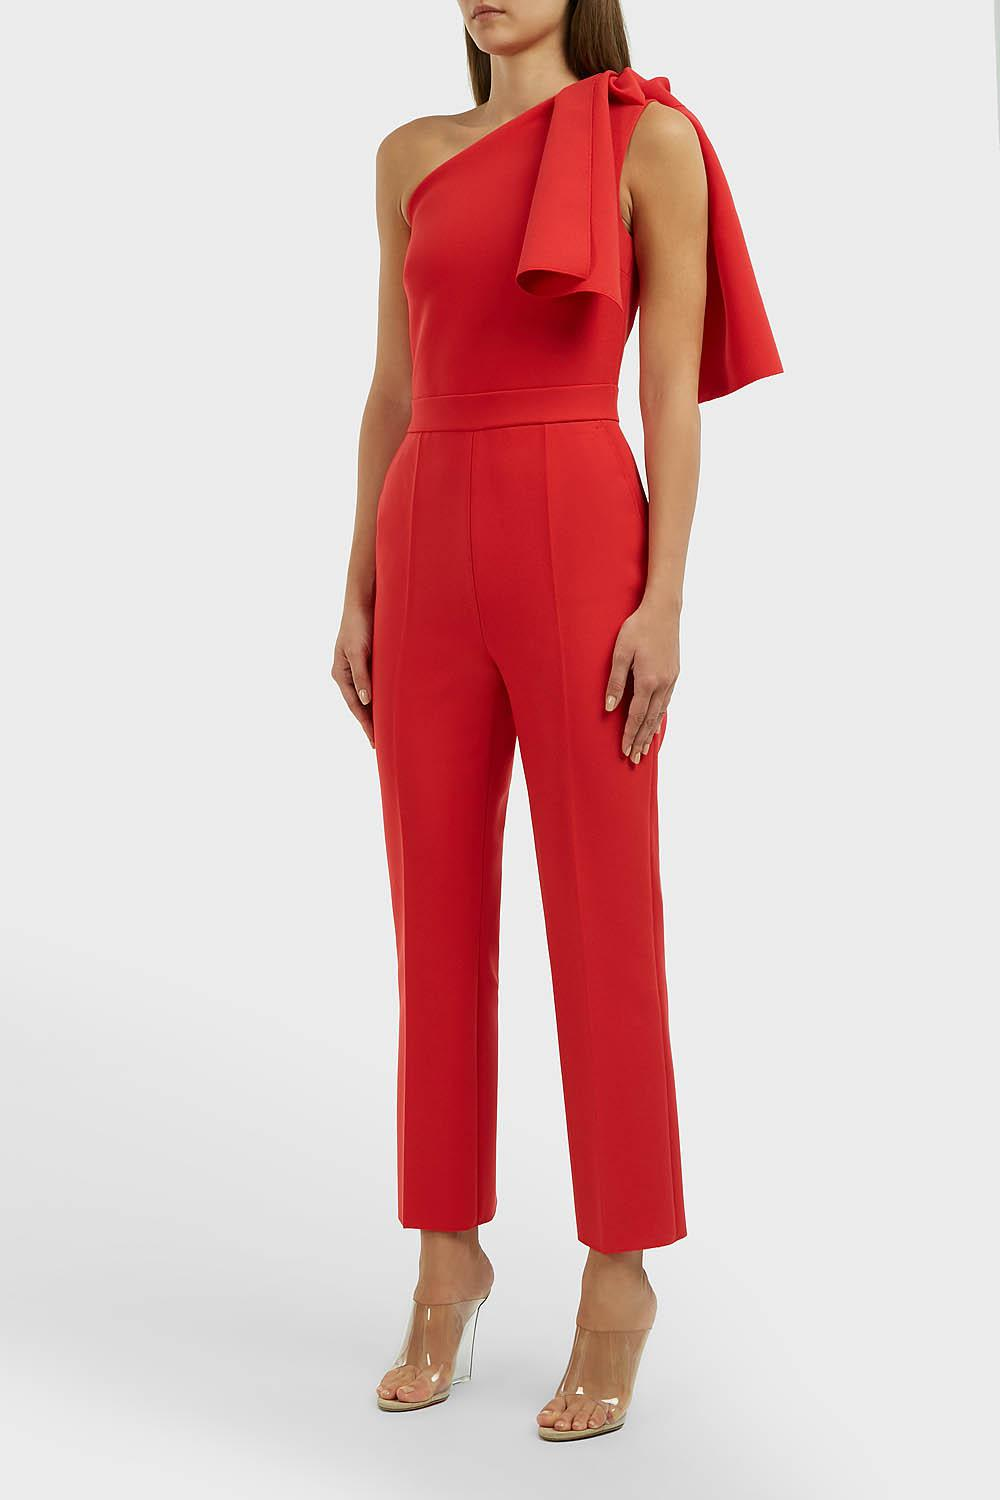 3c6422fdd2a7 Lyst - MSGM Bow One-shoulder Jumpsuit in Red - Save 12%